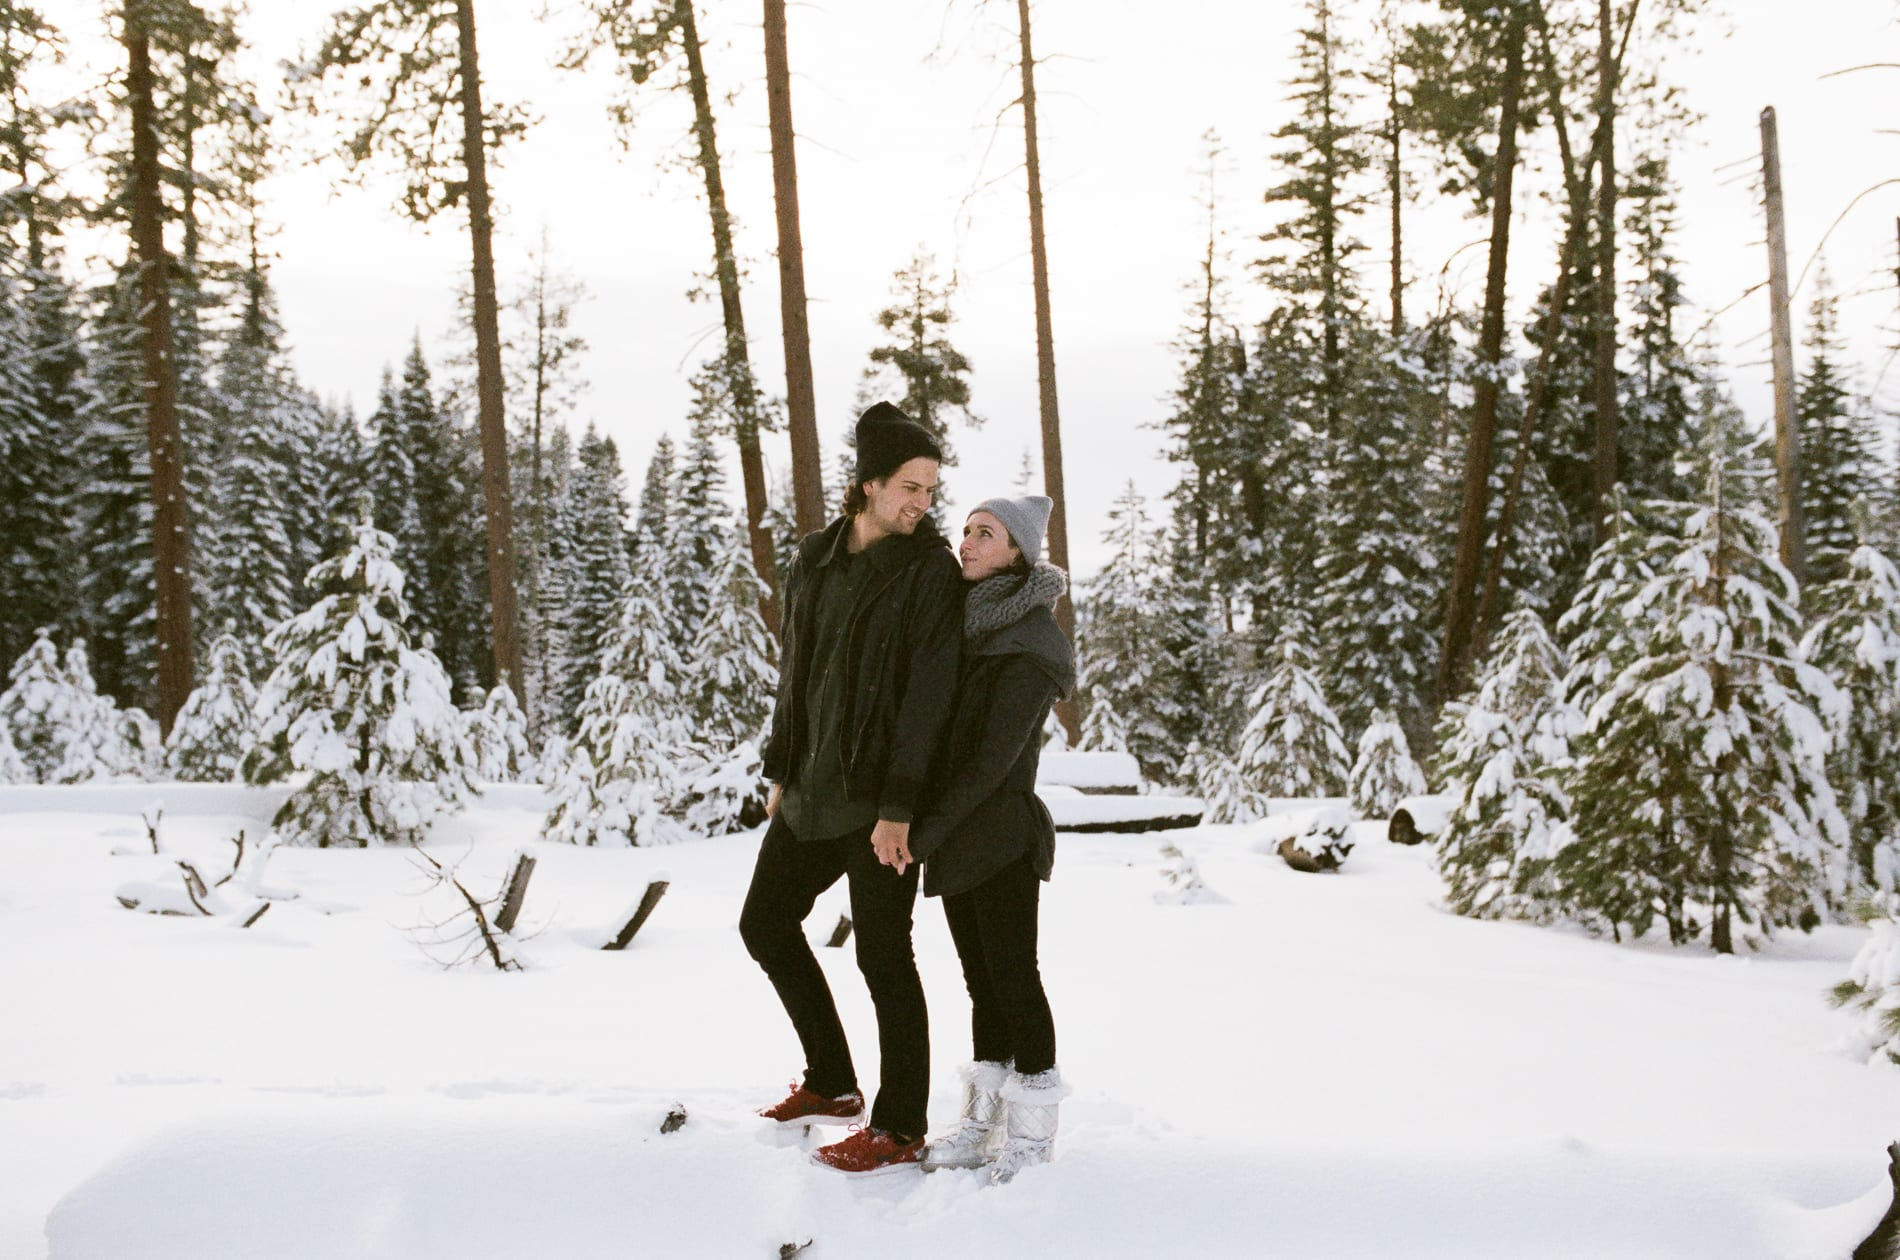 mt-lassen-winter-snow-couples-photo-11